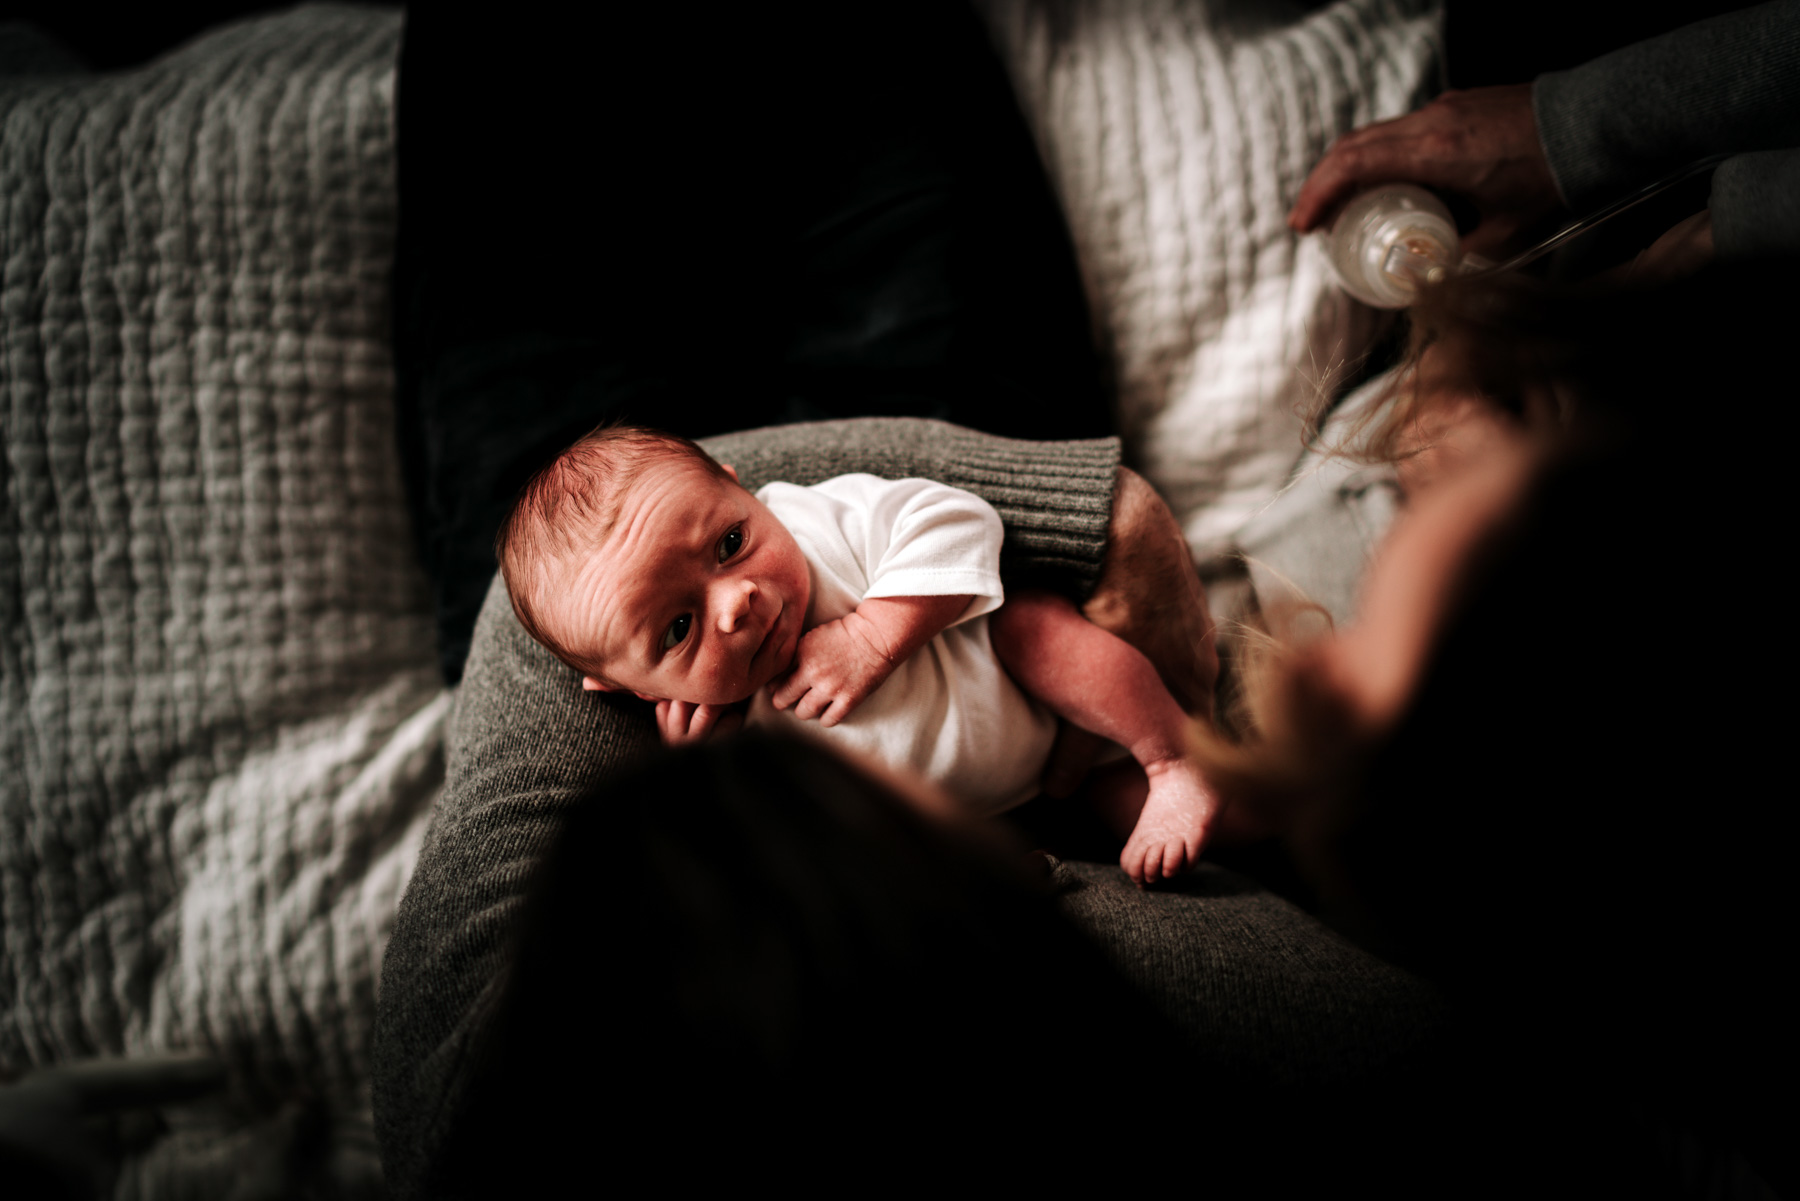 anchorage-wasilla-newborn-photographer-201925_18.jpg